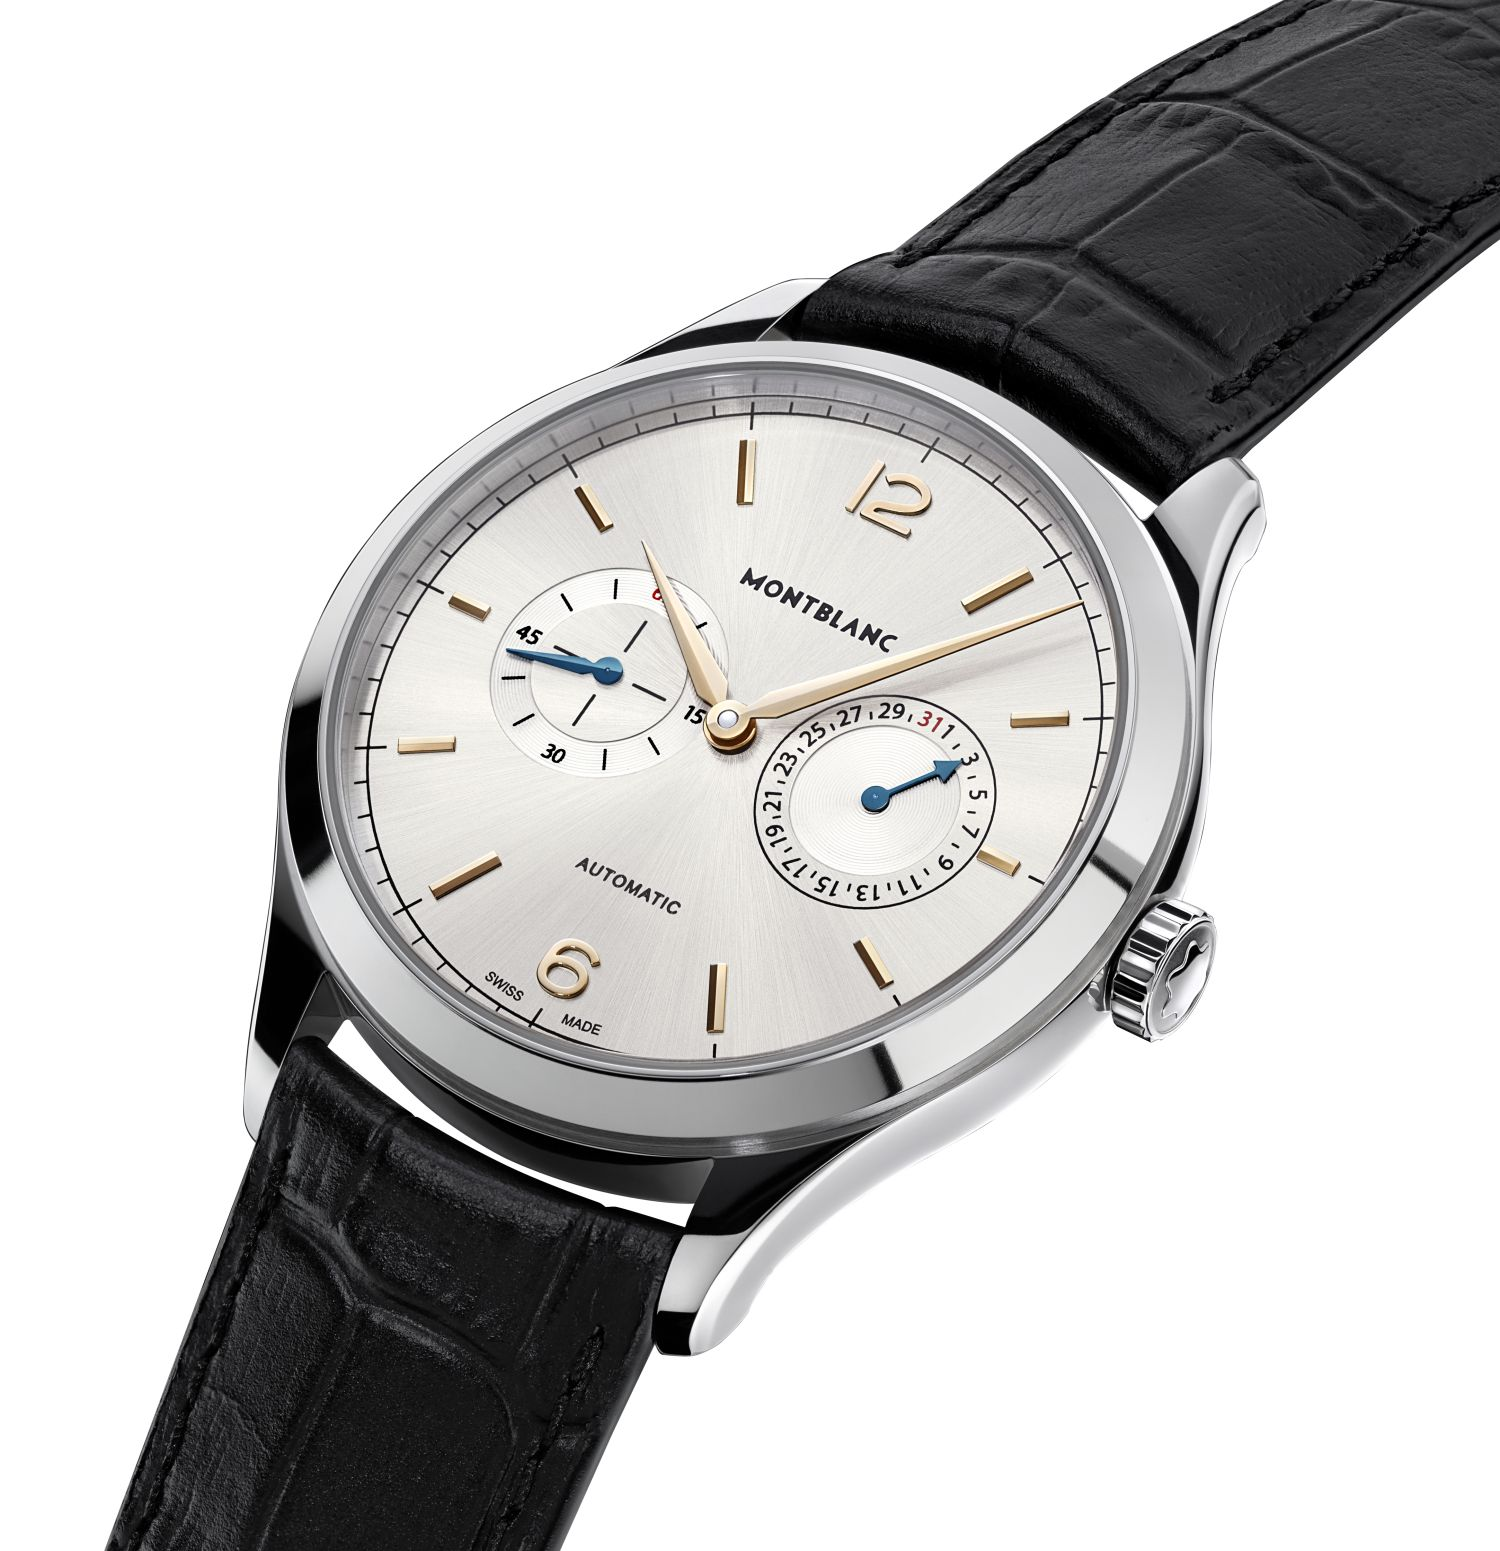 Montblanc-Heritage-Chronometrie-Collection-Twincounter-Date-1.jpg